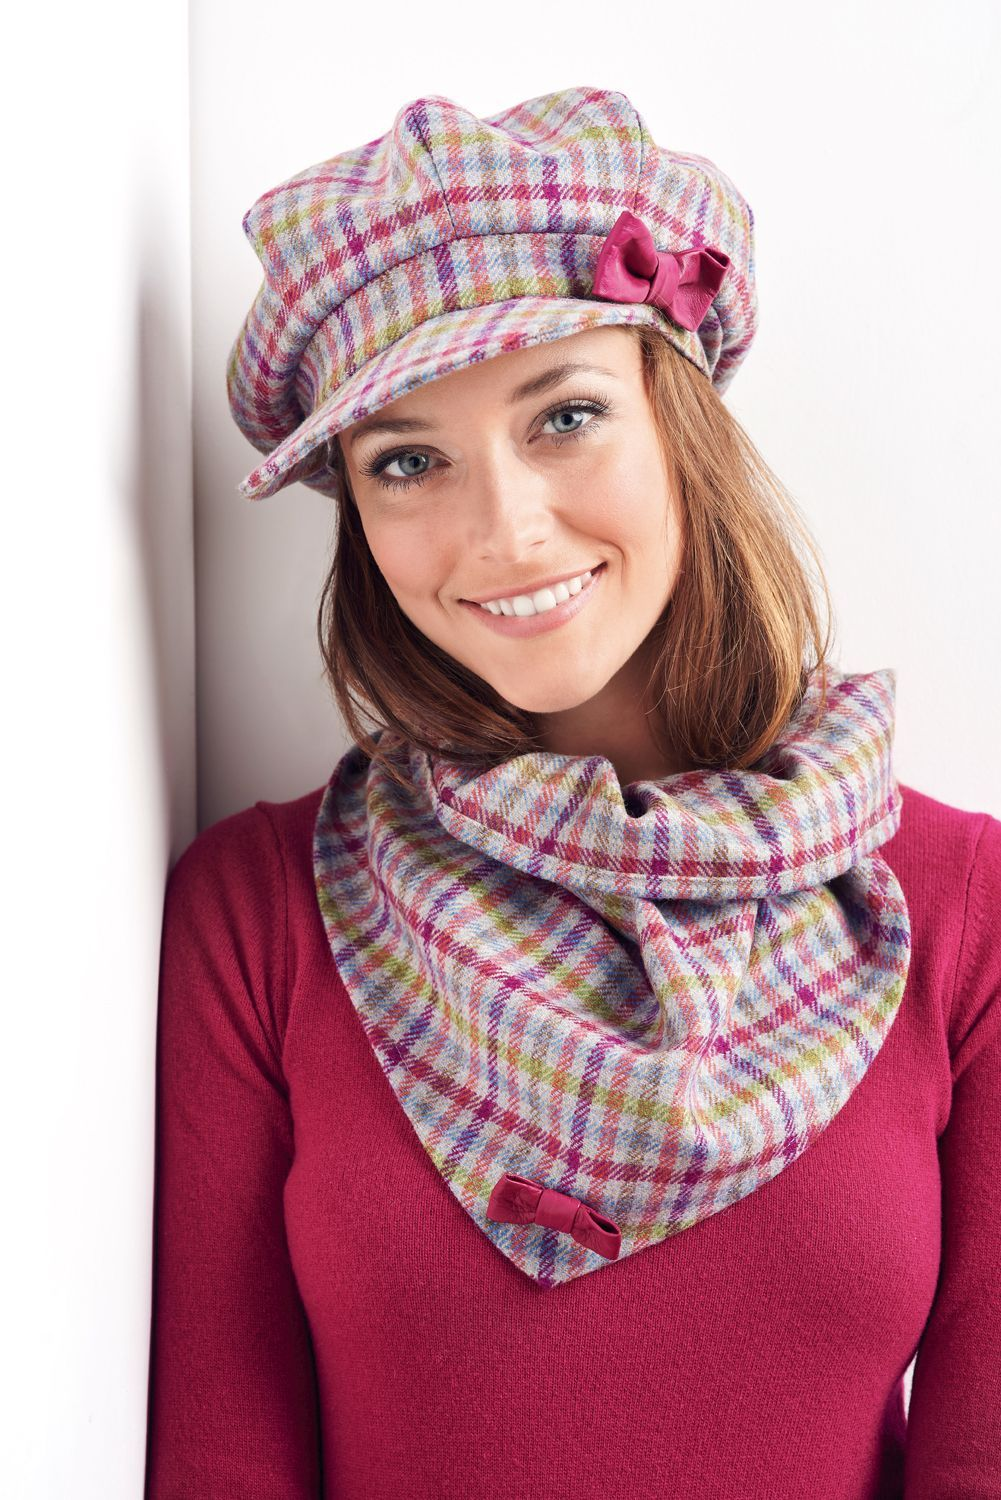 Feeling the cold weather now that we're firmly into the autumn season? Sew yourself a matching cap and scarf set with the help of this project in issue 18 of Dressmaker! #sewcialists #sewing #sewingproject #dressmaking